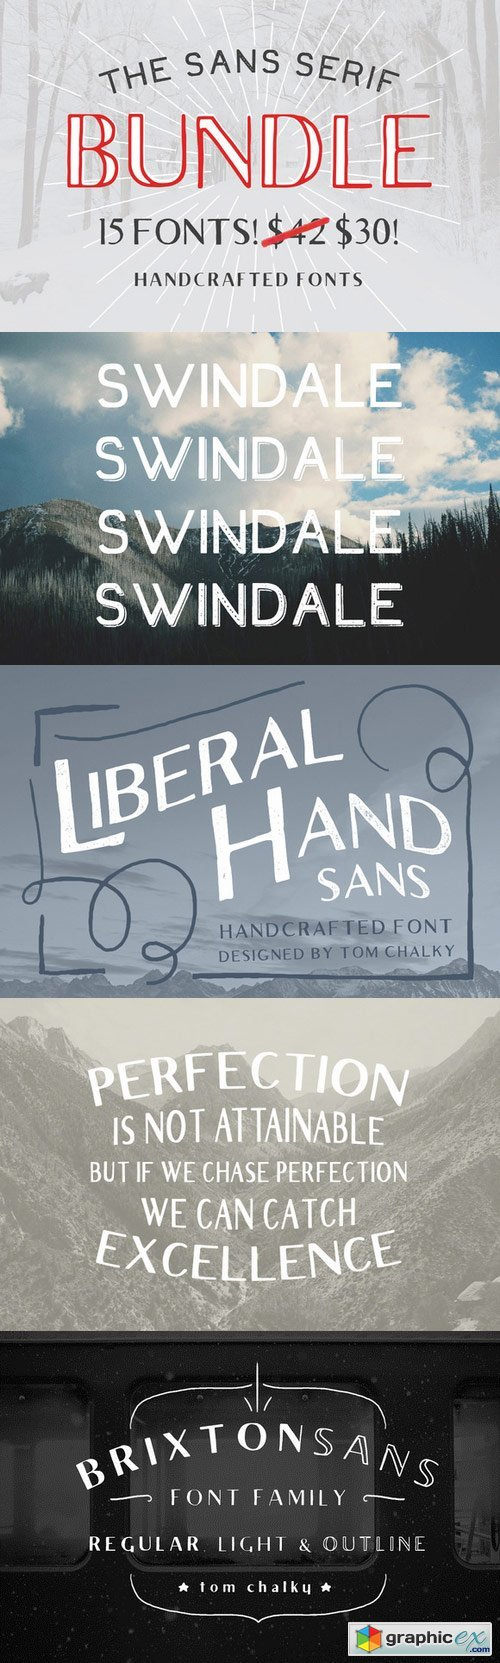 The Sans Serif Bundle - 15 Fonts!